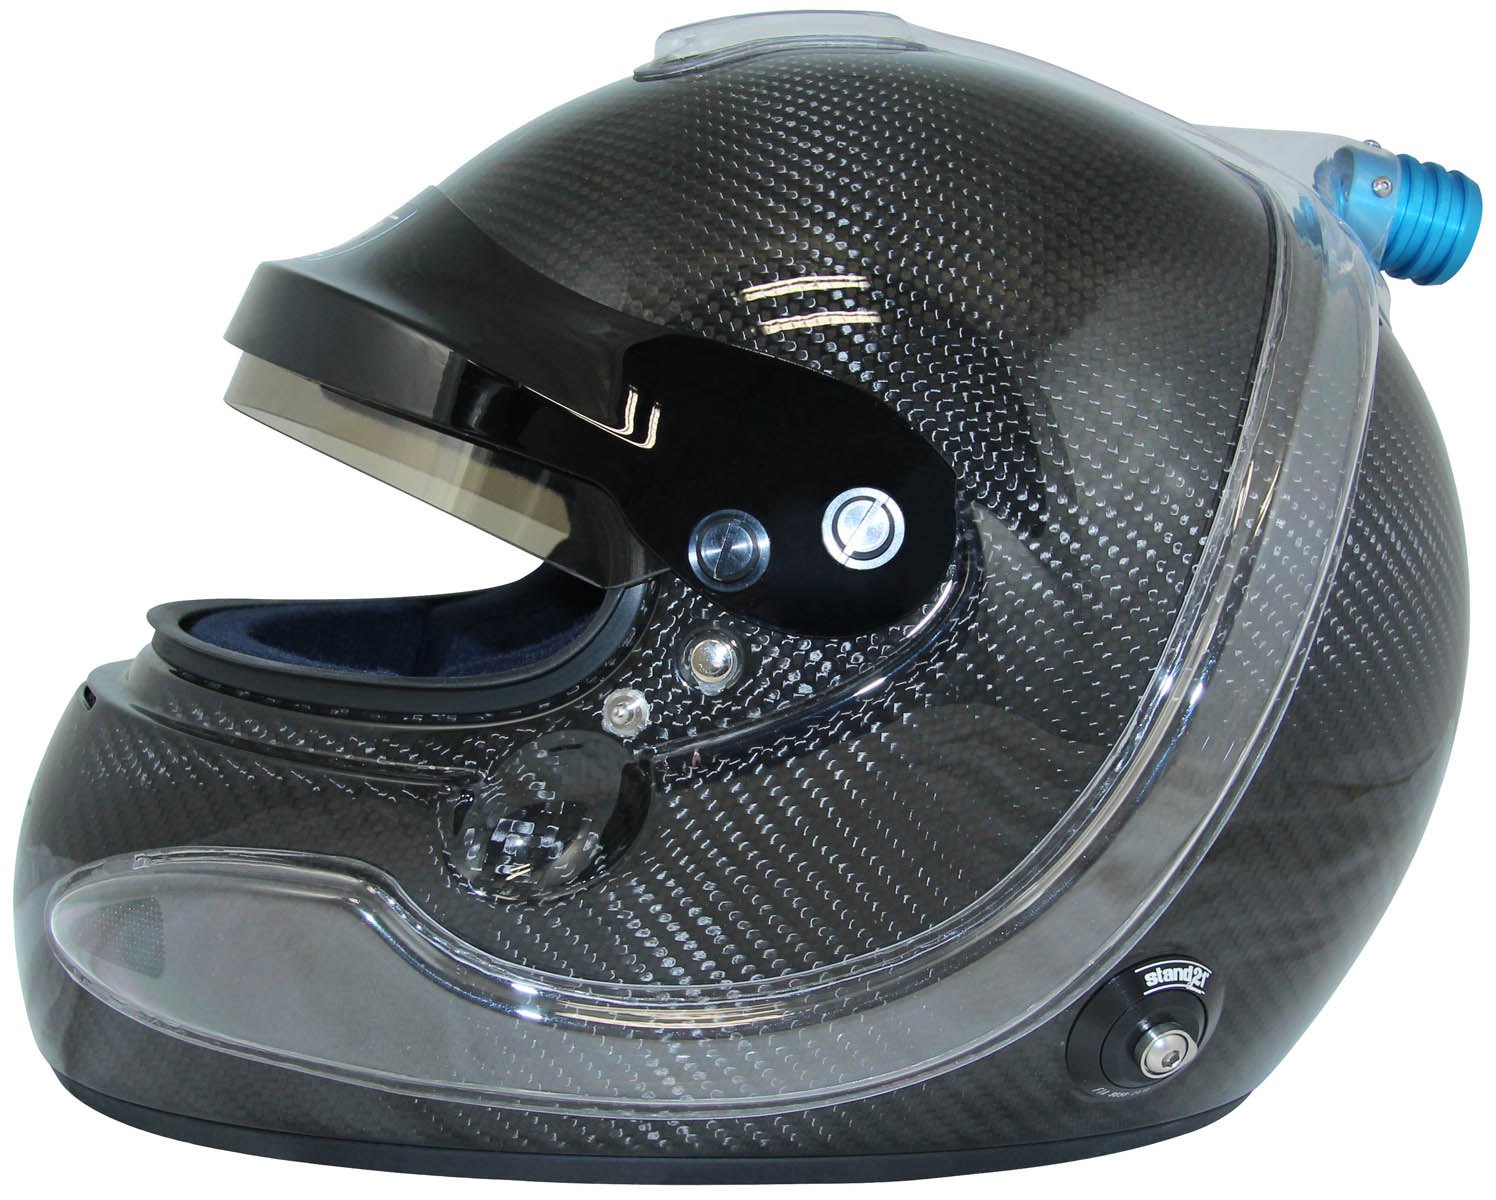 IVOS-Air Force helmet with Global Air Force air intake